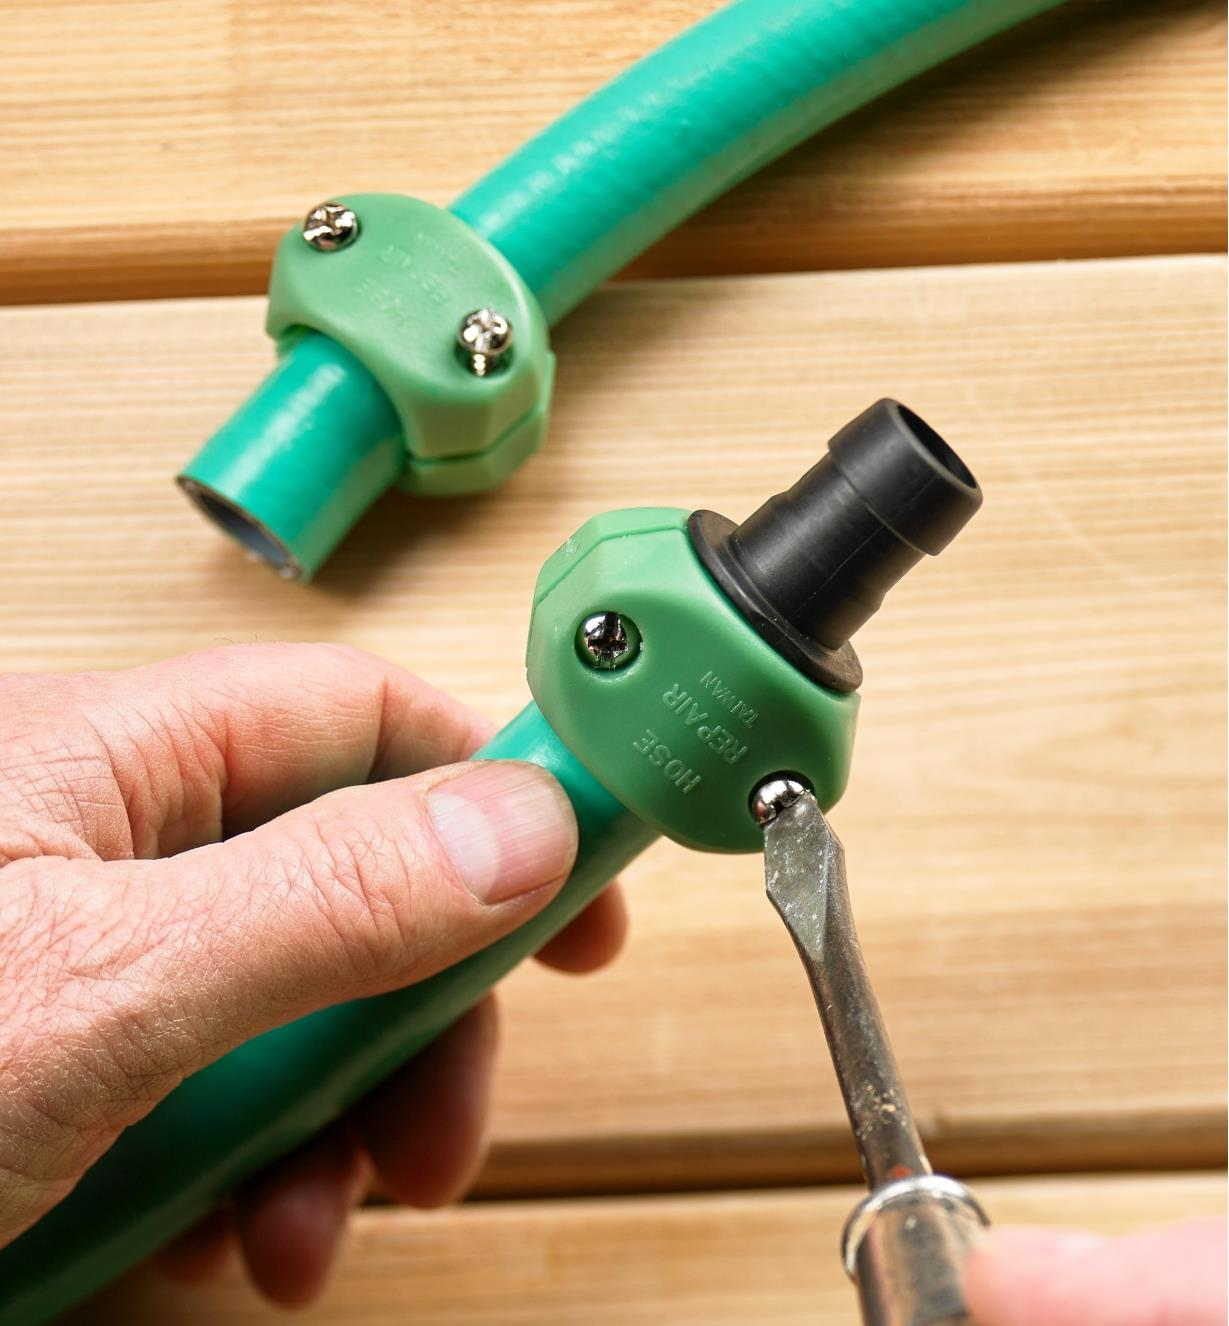 Attaching the hose mender to a section of garden hose using a screwdriver